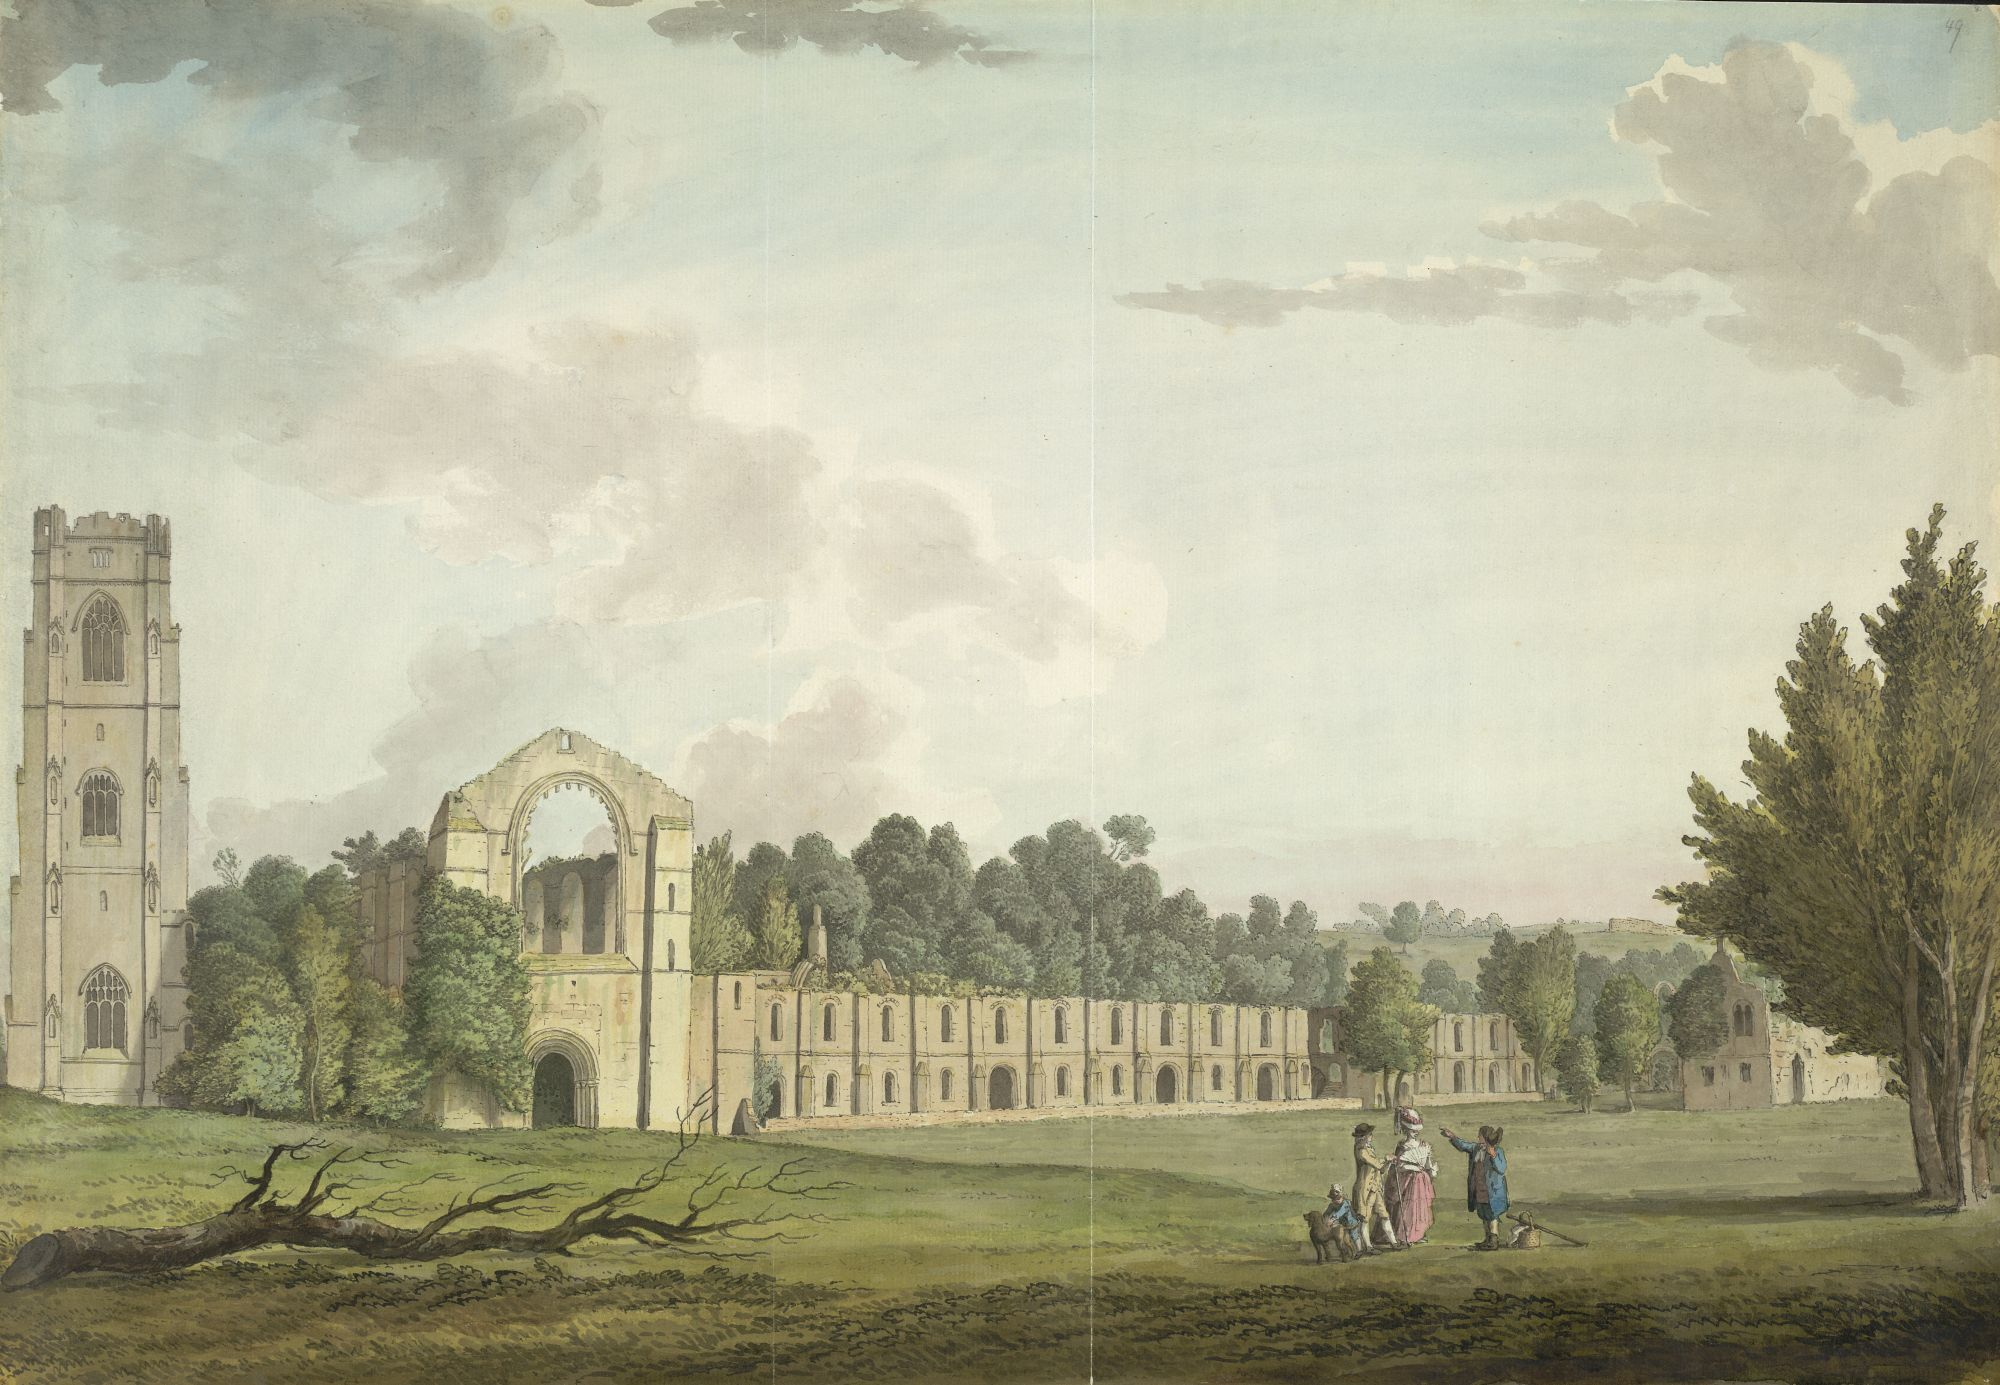 A view of Fountains Abbey by Samuel Hieronymus Grimm.